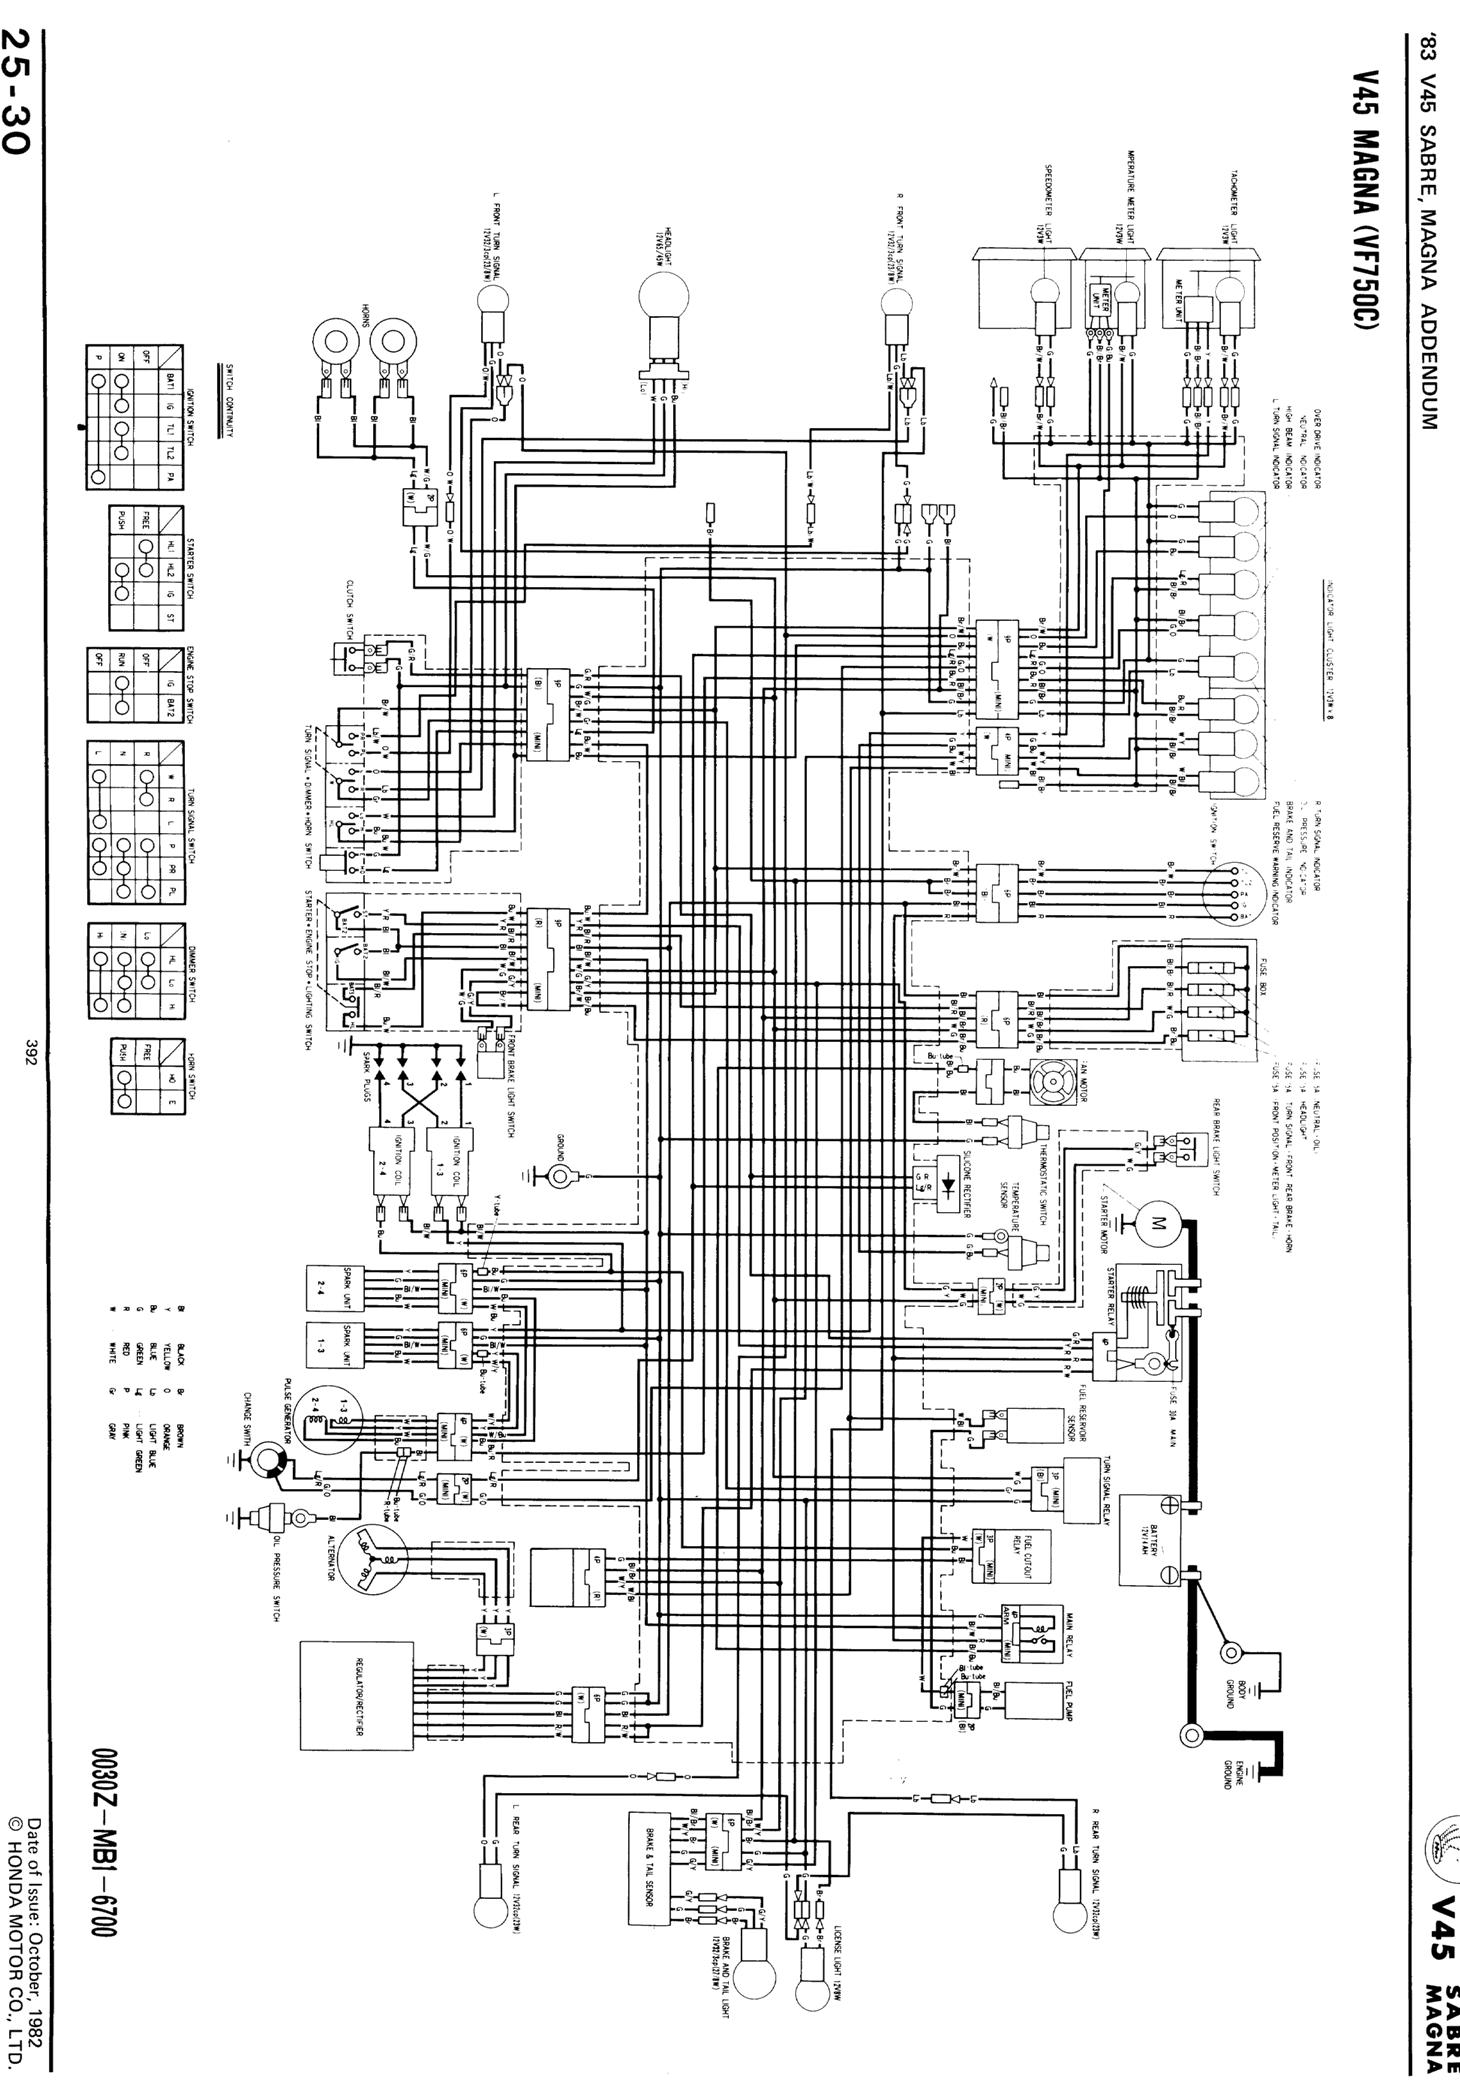 Wiring Diagram Soundtraxx Tsunami2 1100